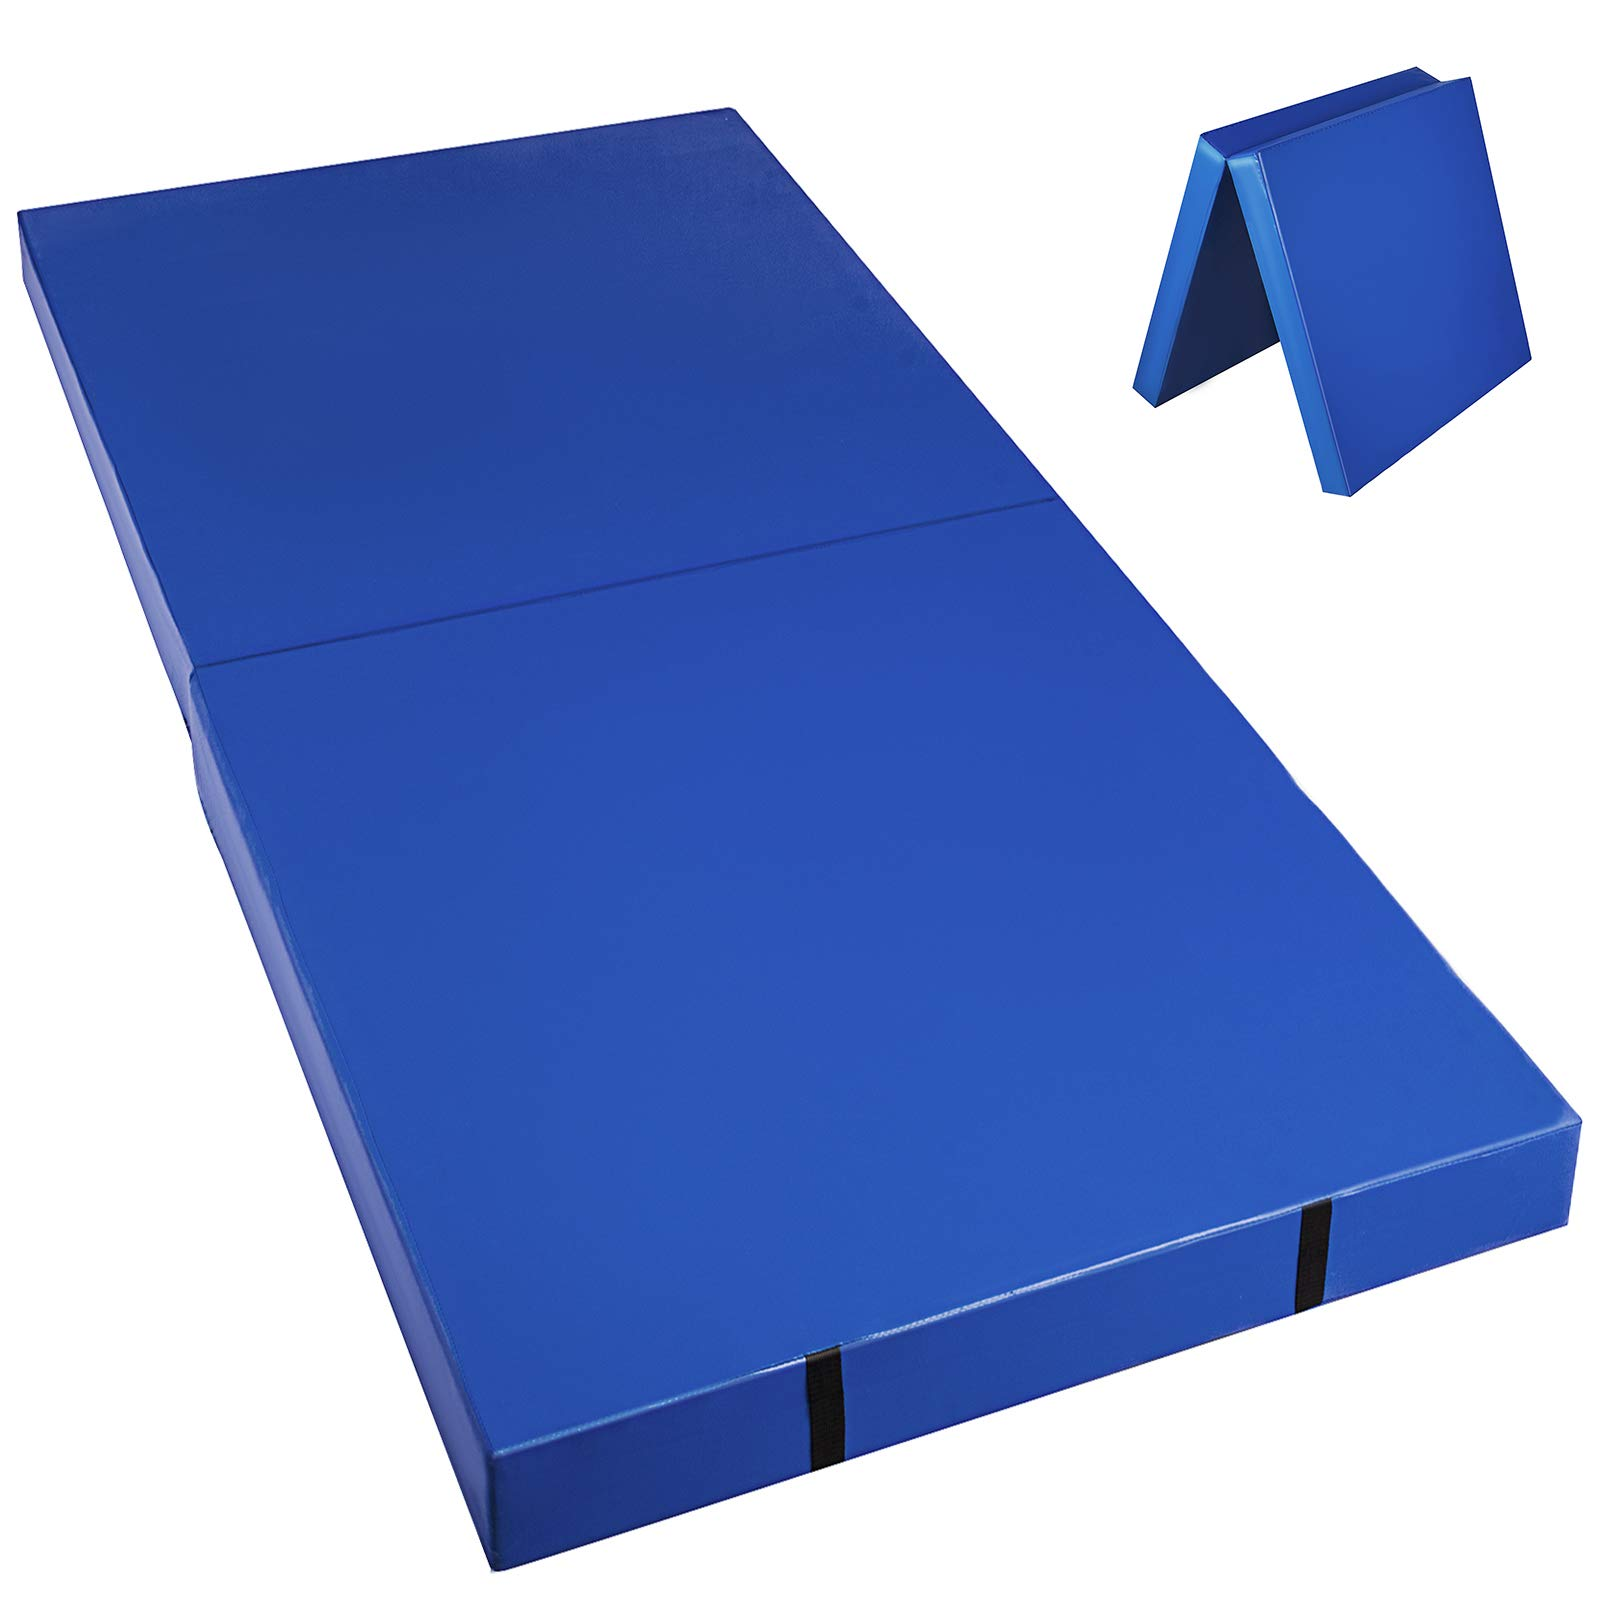 Happybuy Junior Practice Mat 6x3x4 inches Blue Folding Gym Mat High Density Folding Mat 4 inch Thick for Gymnastics Stretching Core Workouts